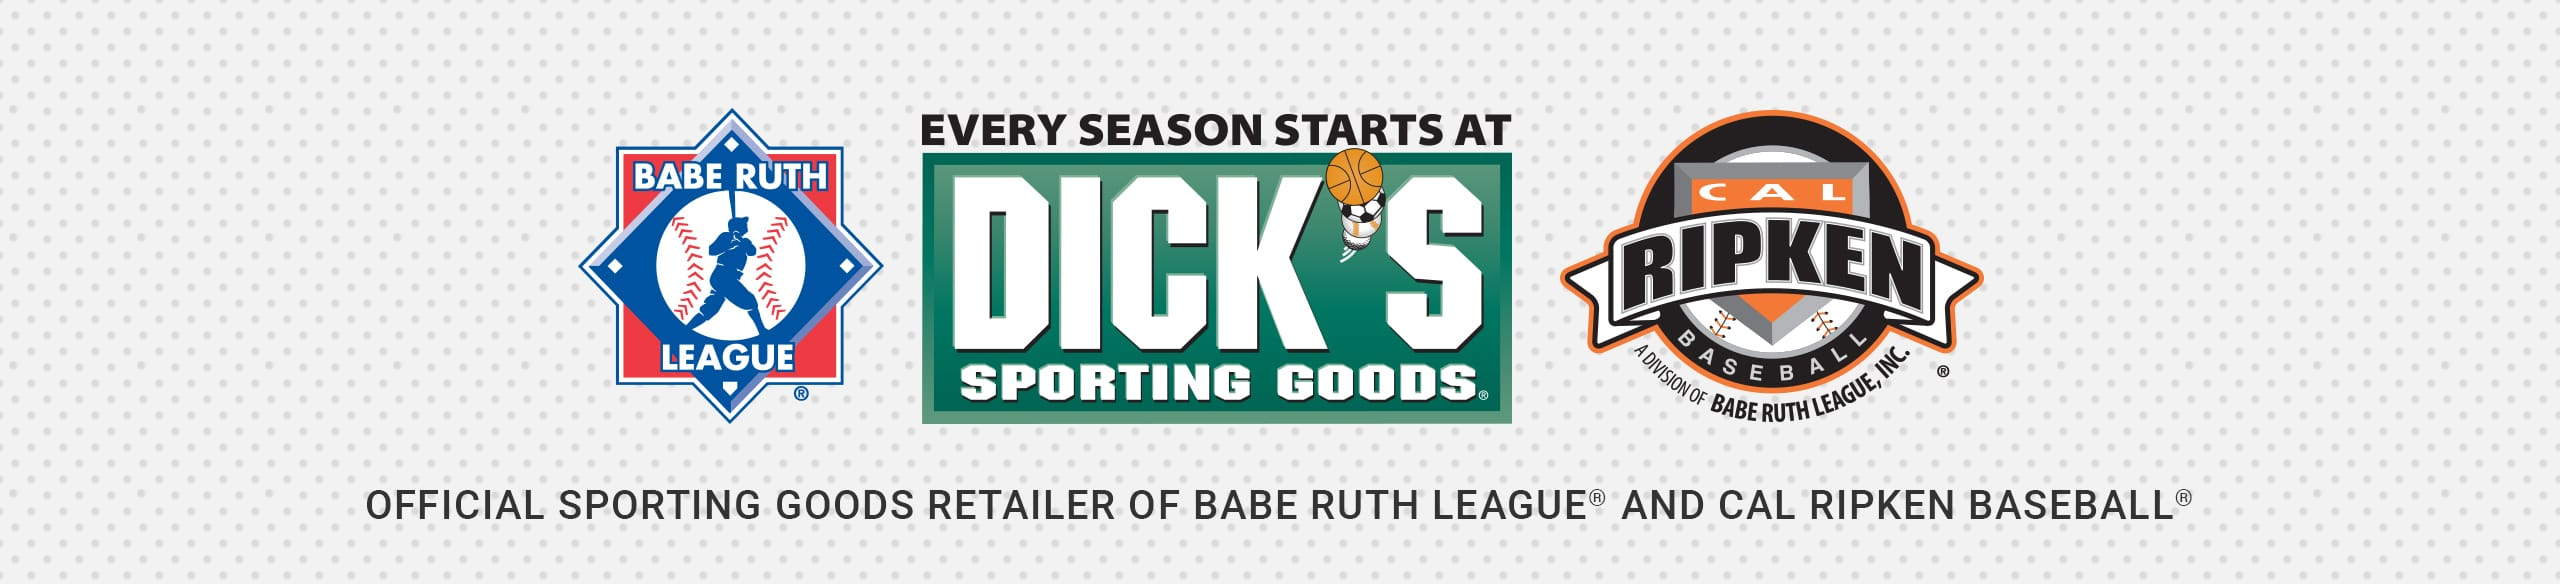 Every Season Starts at Dick's Sporting Goods. Official sporting goods retailer of Babe ruth league® and cal ripken baseball®.